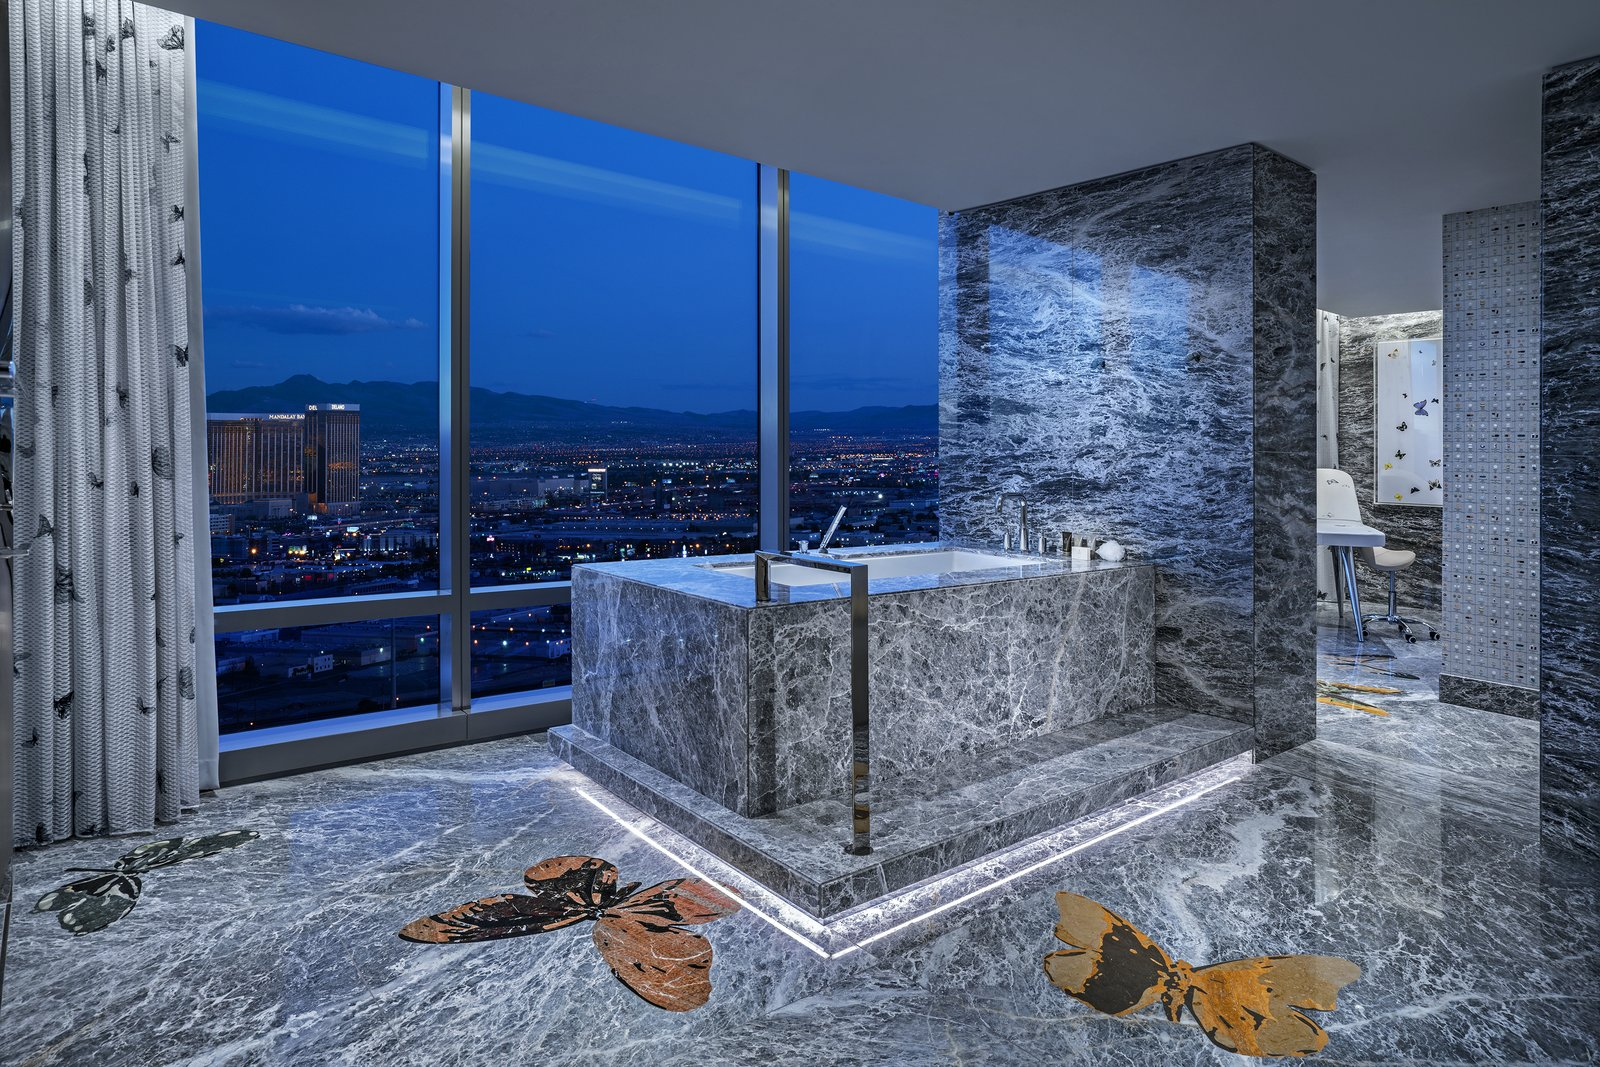 Bath, Marble, Freestanding, Marble, Marble, Undermount, and Accent Inlaid butterflies add visual interest to the vast slabs of gray marble. An adjoining massage room makes for the ultimate spa-like bathroom.  Bath Marble Accent Photos from Damien Hirst's New Suite at the Palms Casino Resort Costs $100K a Night